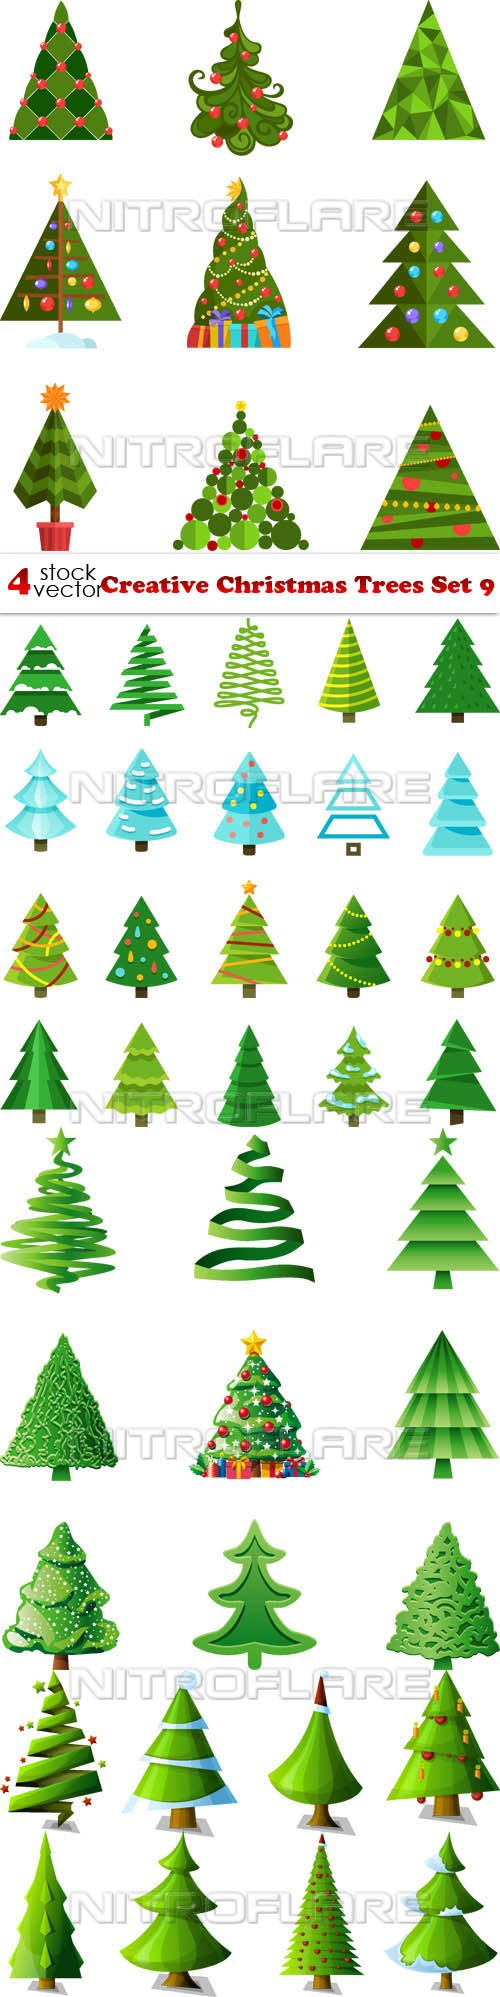 Vectors - Creative Christmas Trees Set 9